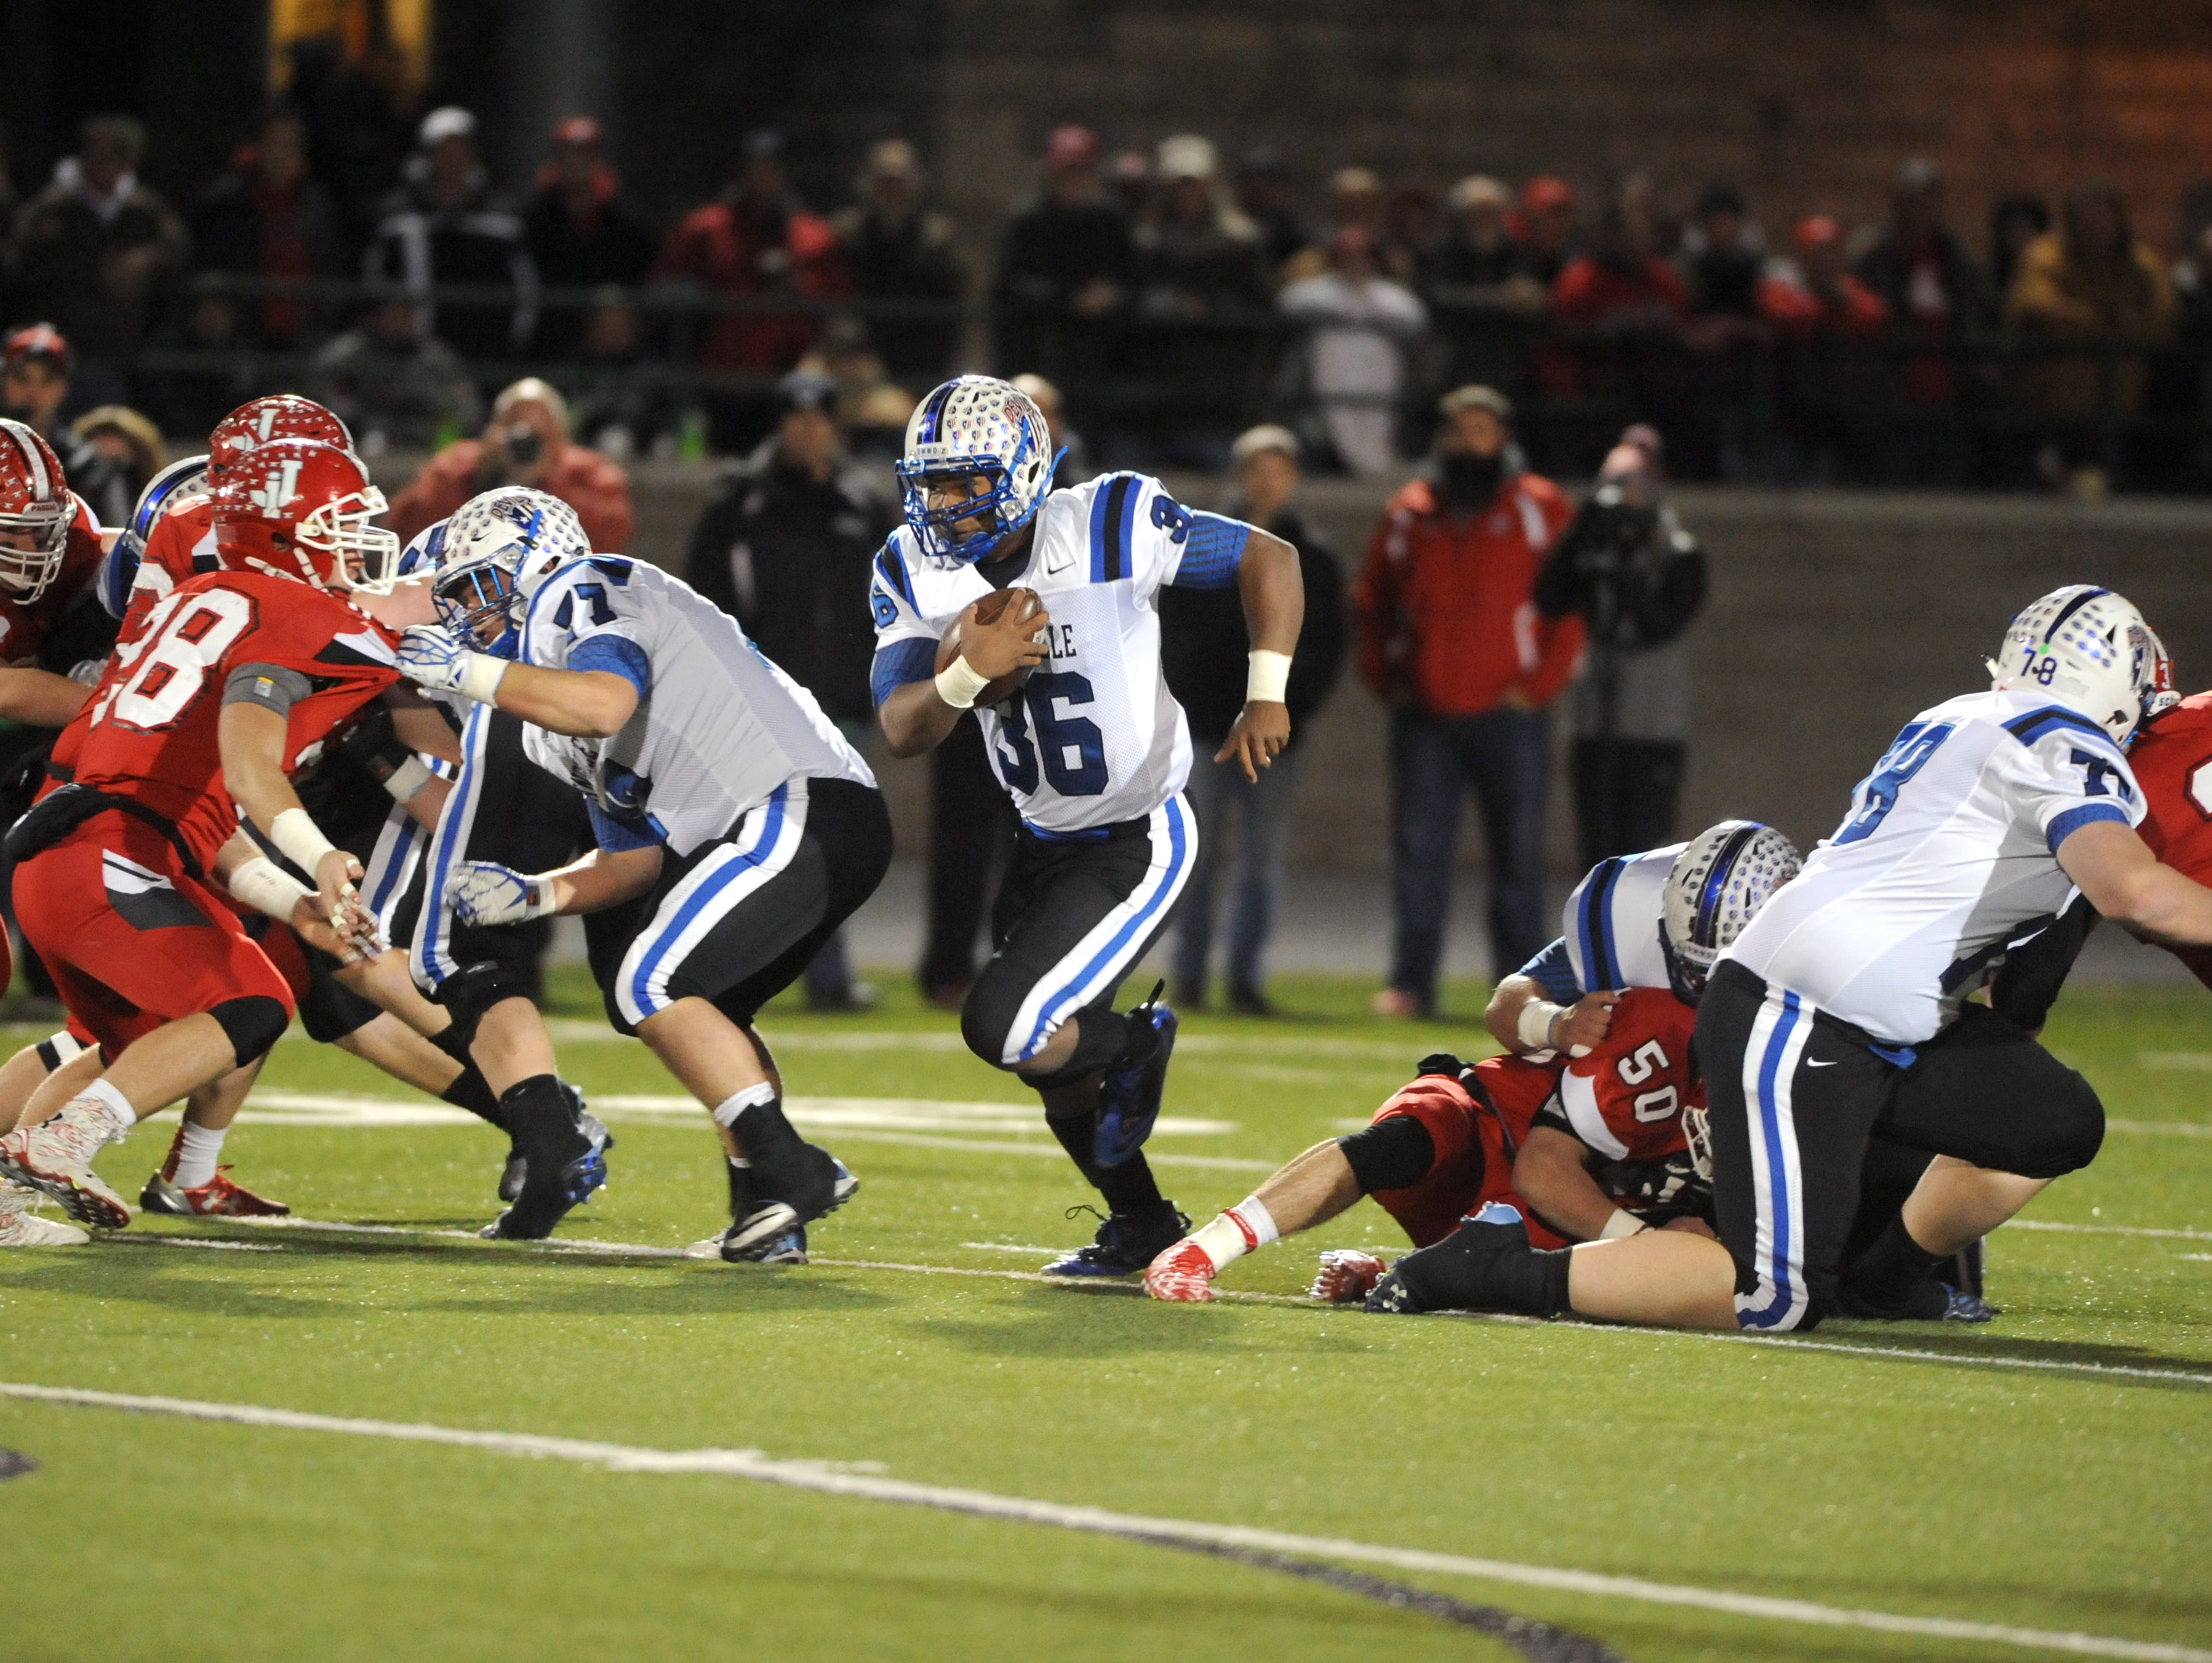 The Zanesville offensive line opens up a hole for Leo Crosby during the Blue Devils victory over Jackson in a Division III regional finals game at Athens High School. The unit, led by Coulter Wilson (right) and Tavian Butts, has helped the Blue Devils amass 4,554 yards this season.